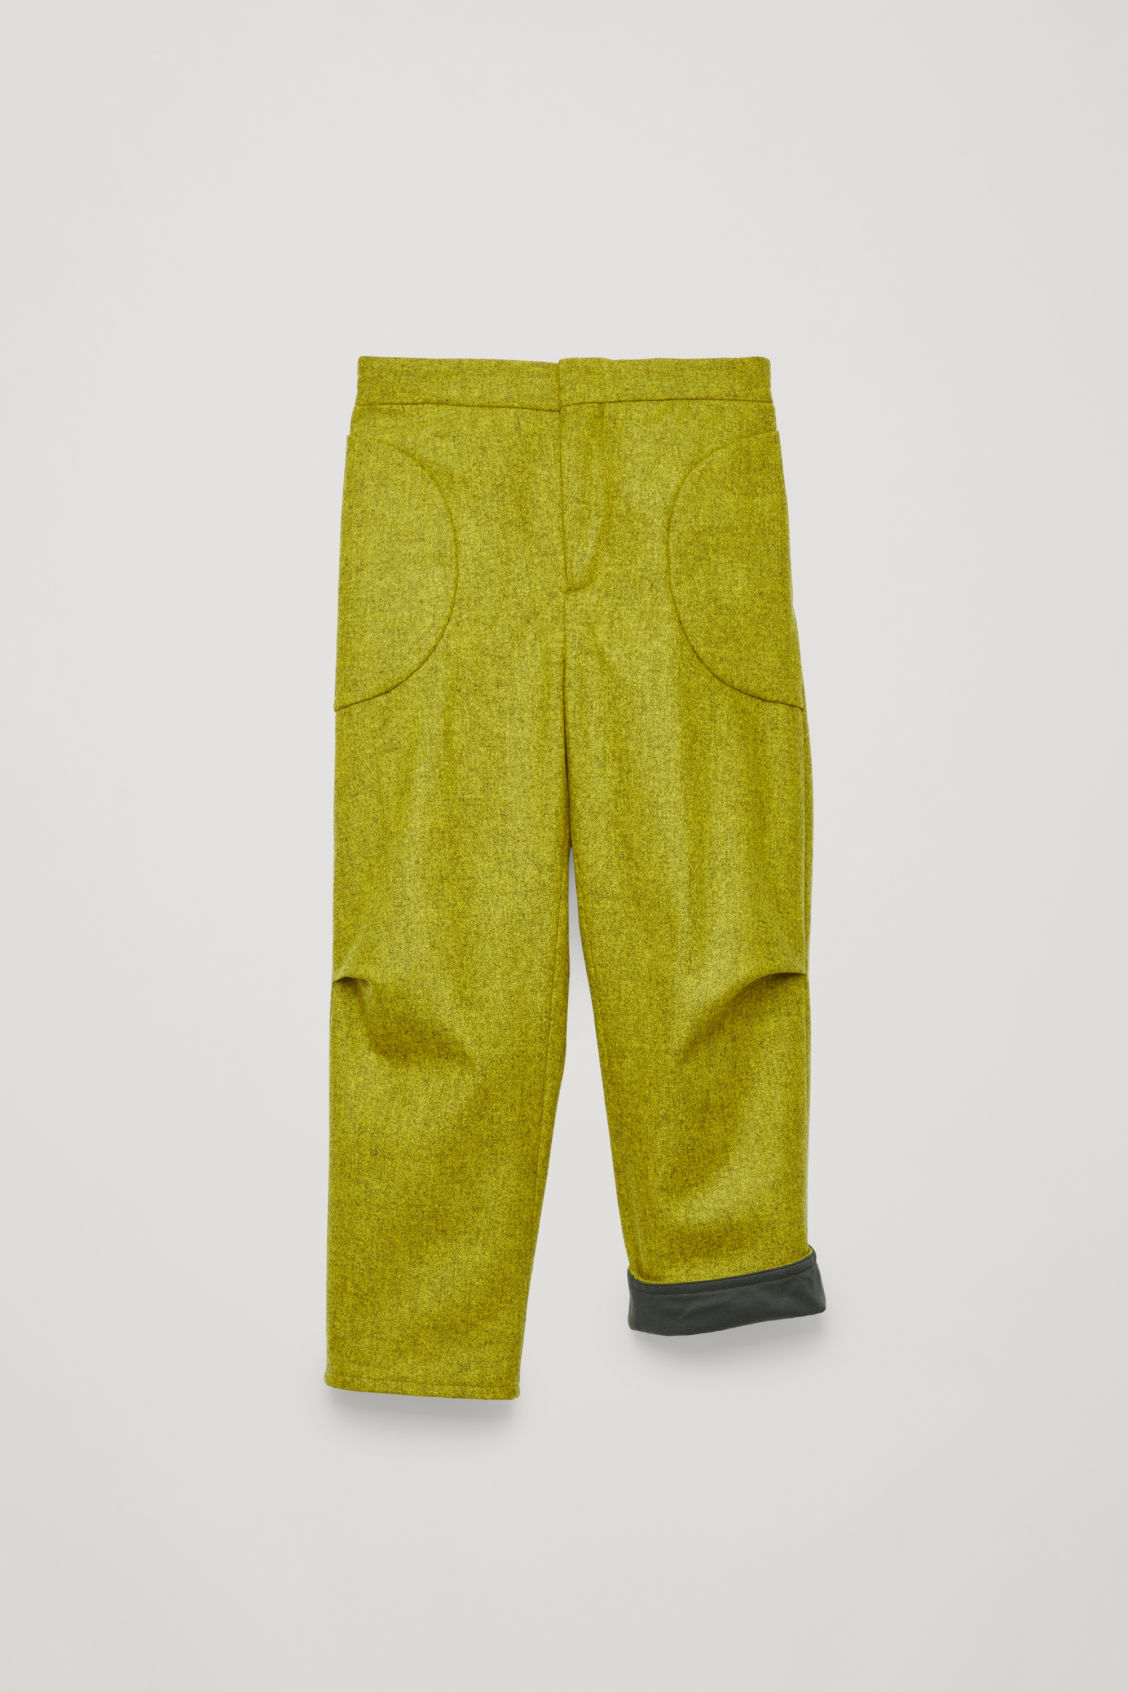 Detailed image of Cos trousers with pleated pockets in yellow